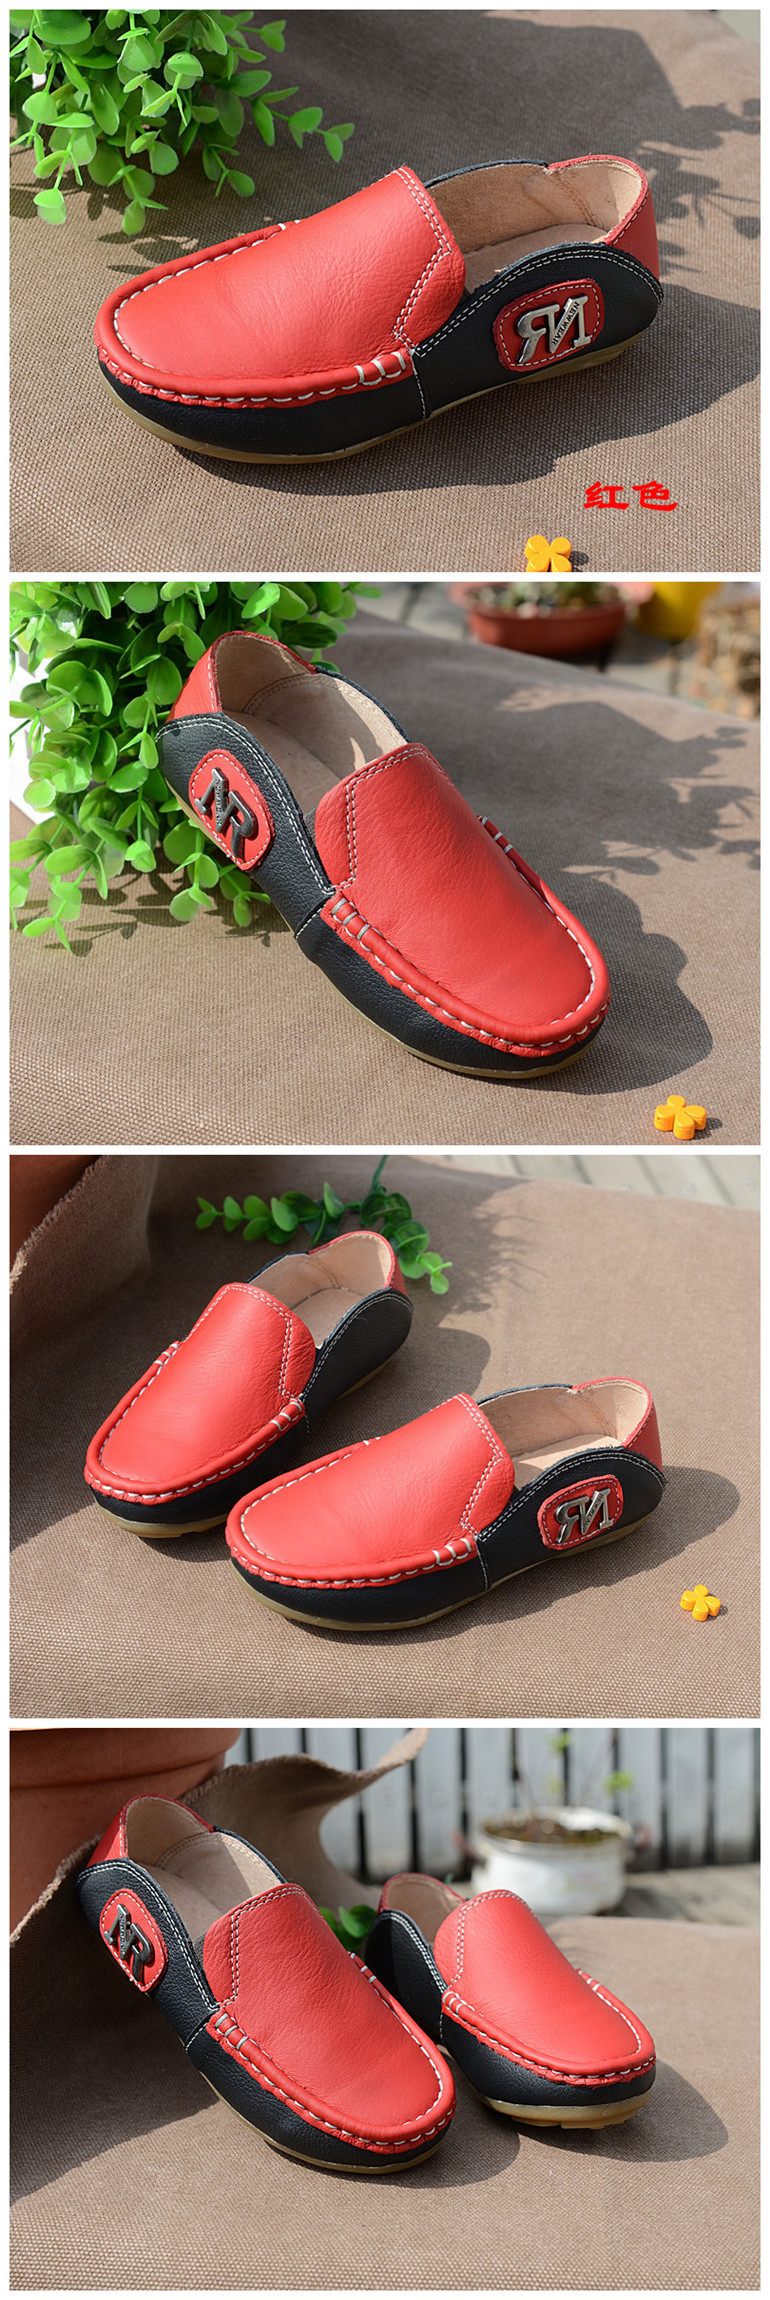 17 Kids new boys children's casual shoes baby boy high quality shoes for big boys kid comfort fashion sneakers shoes 3